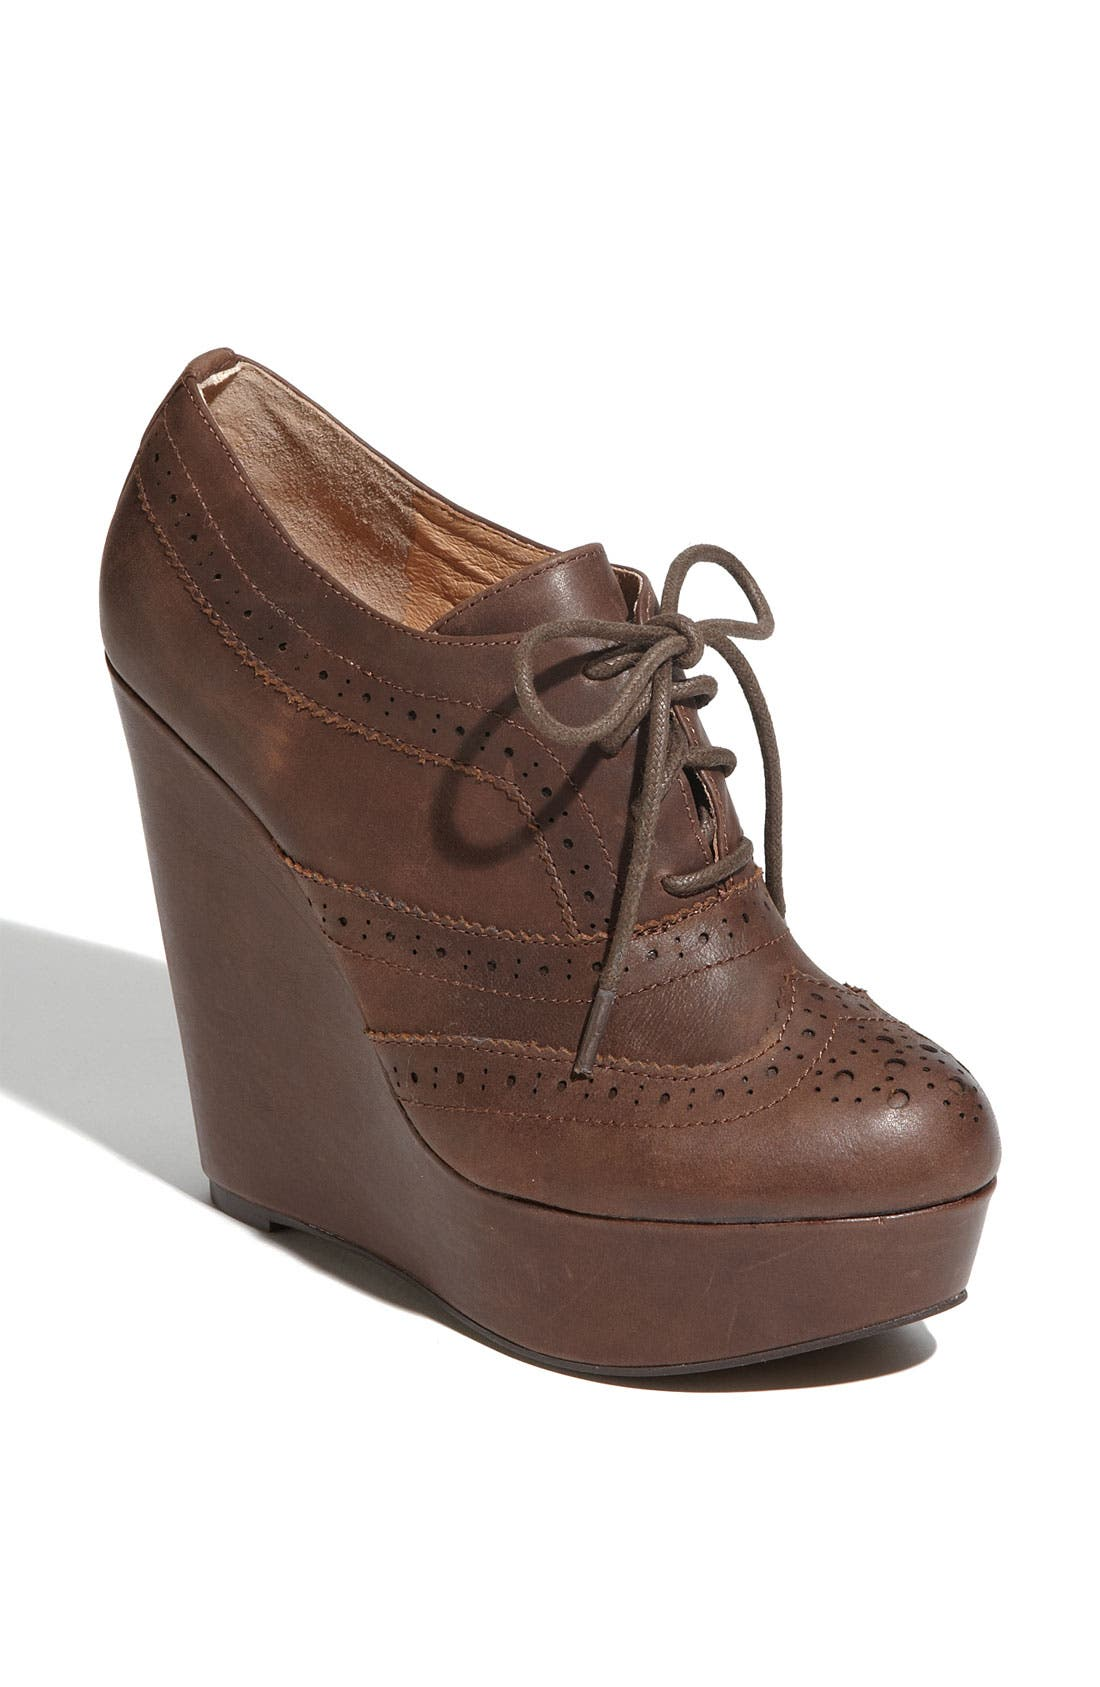 Main Image - ALDO 'Horvath' Oxford Wedge